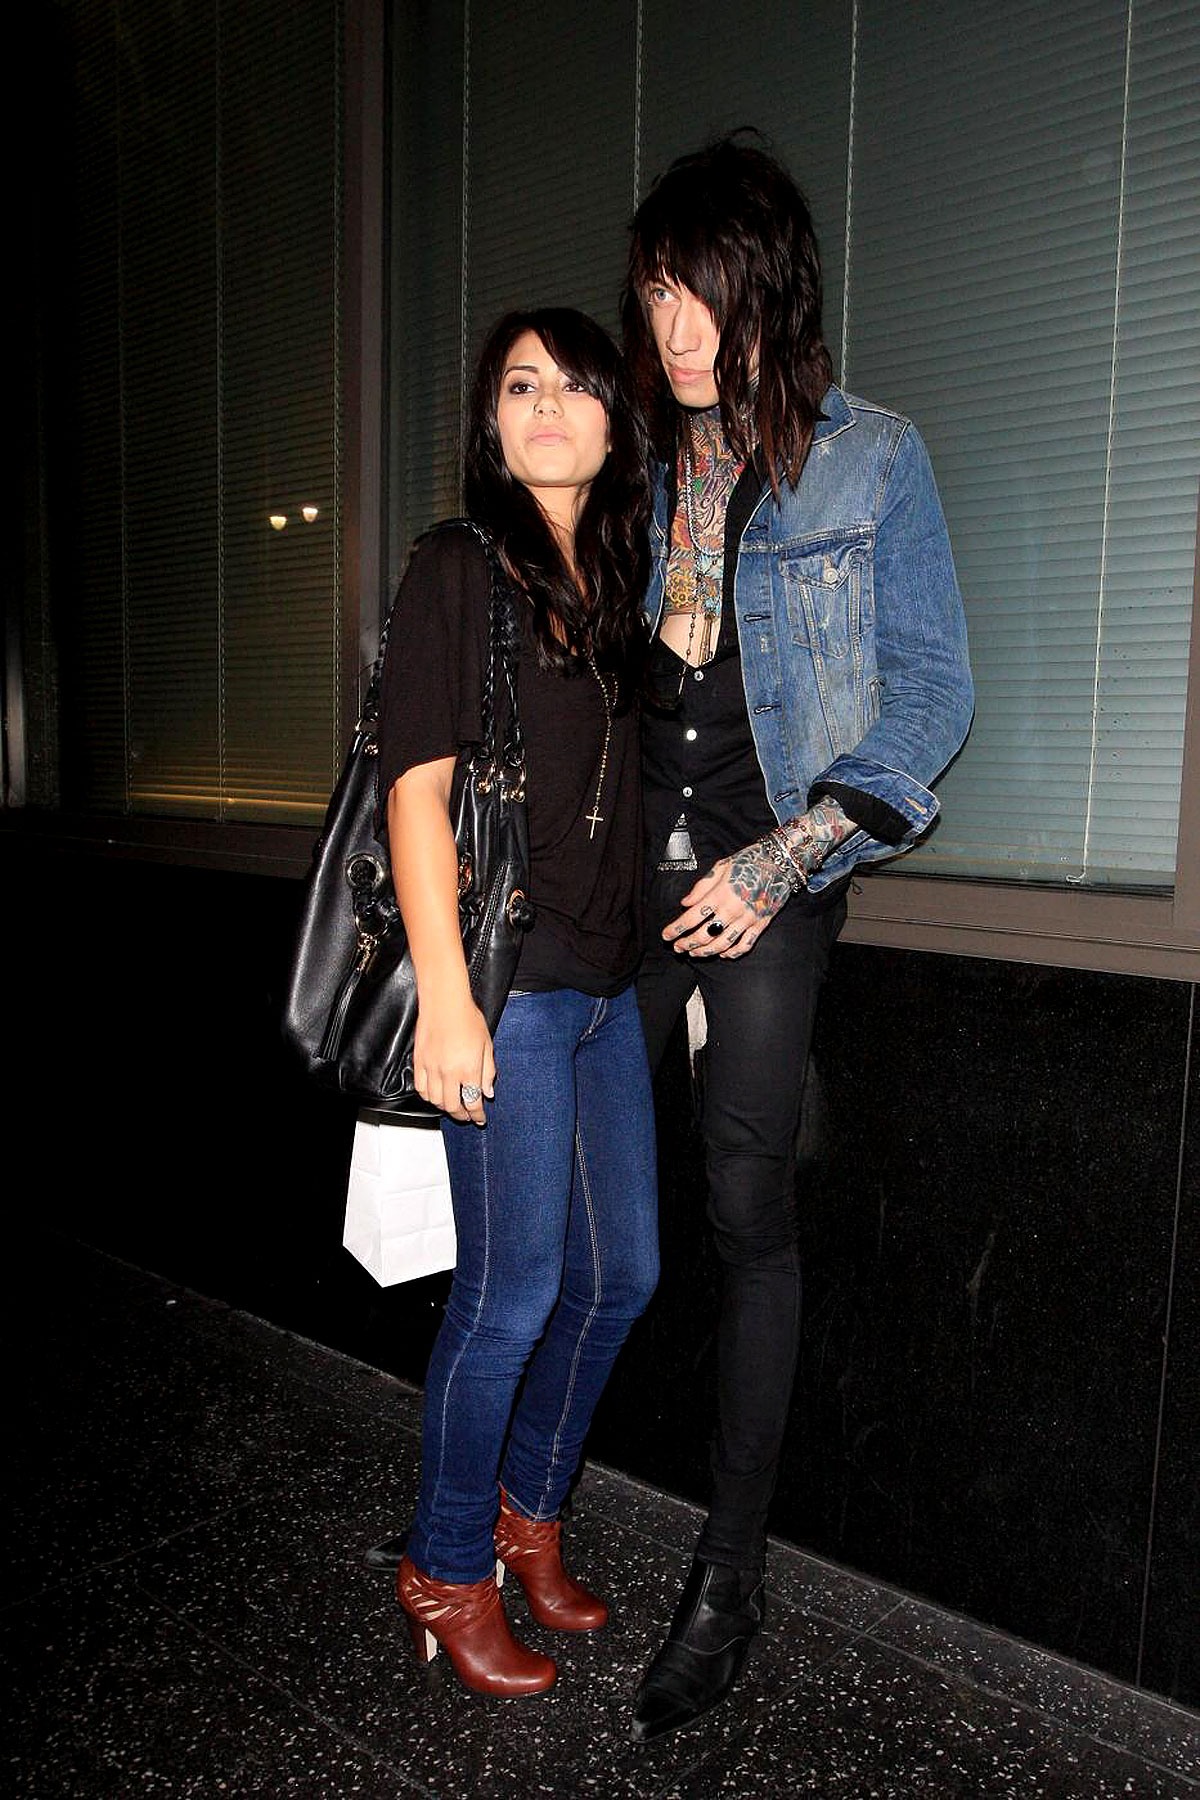 PHOTO GALLERY: Trace Cyrus's Demi Lovato-ish Date